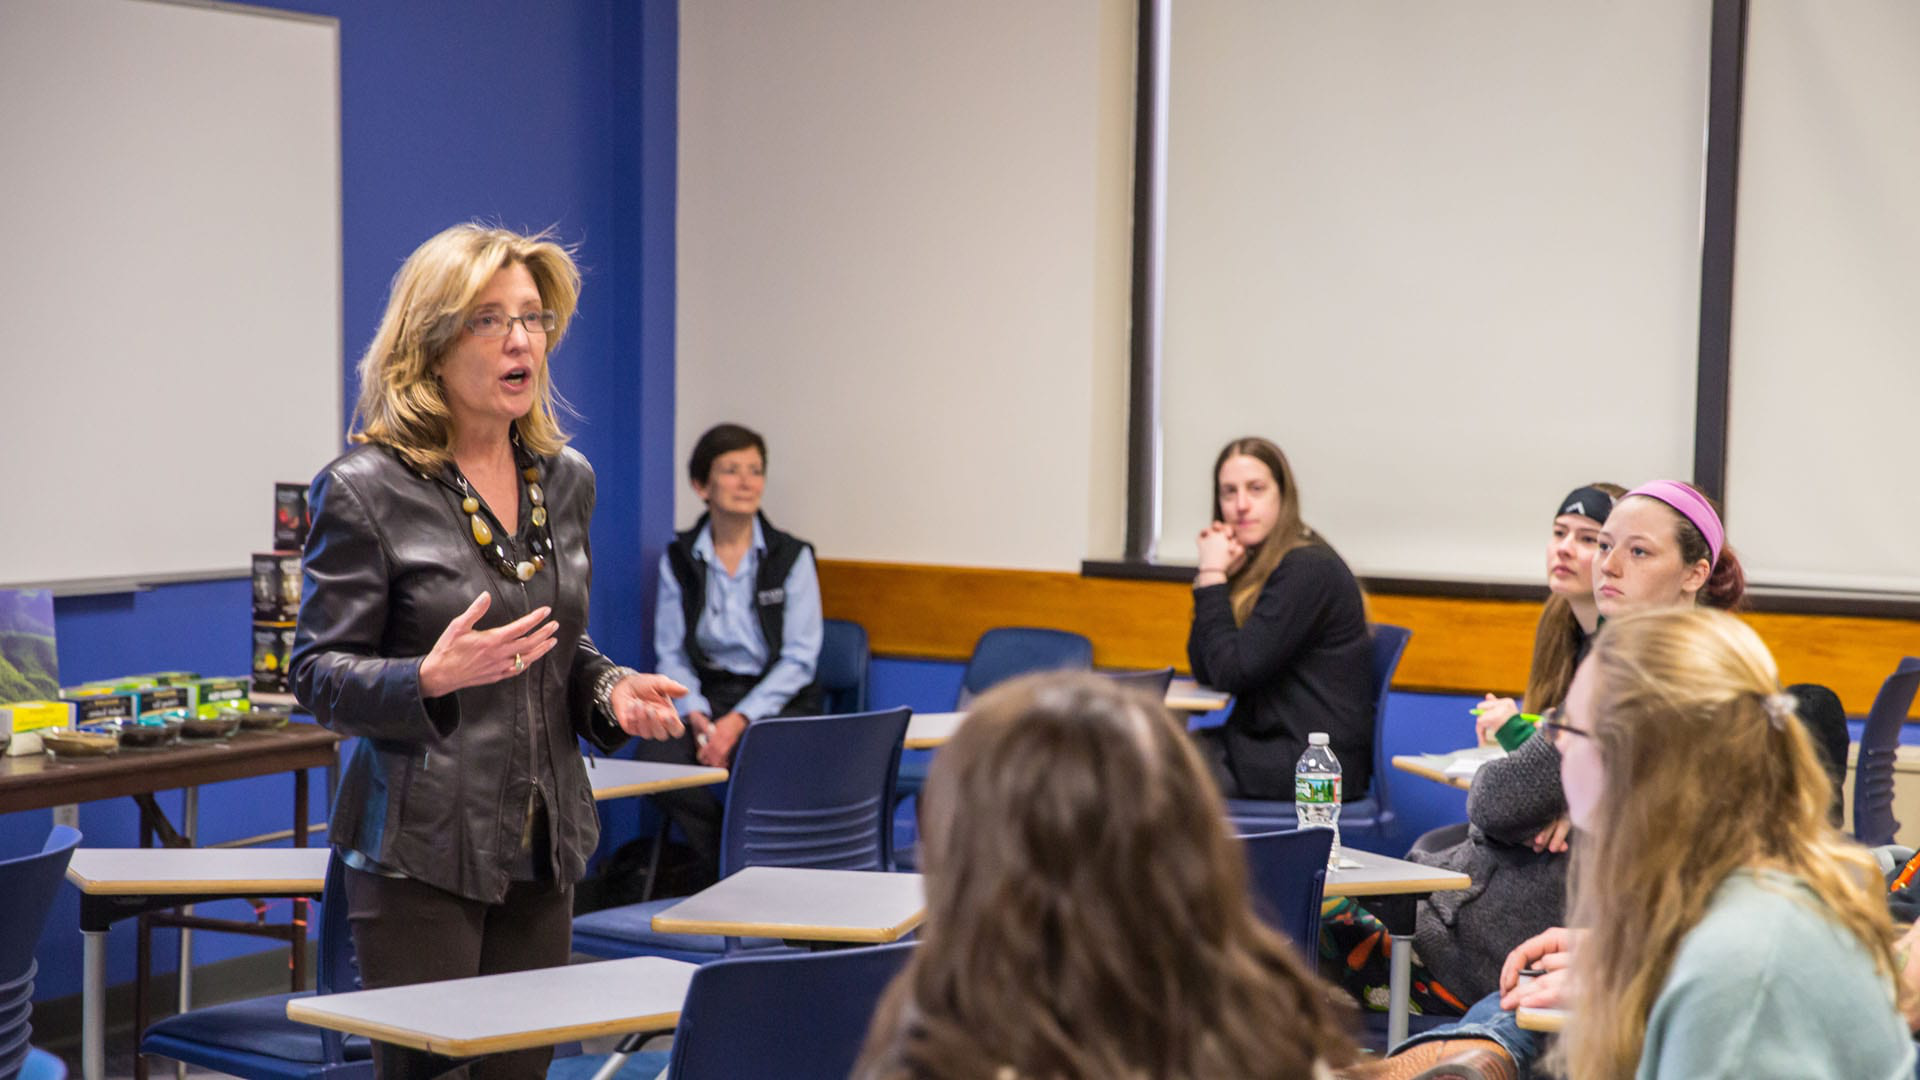 Cindi Bigelow speaks with hospitality students about Bigelow Tea and breaking into the industry.